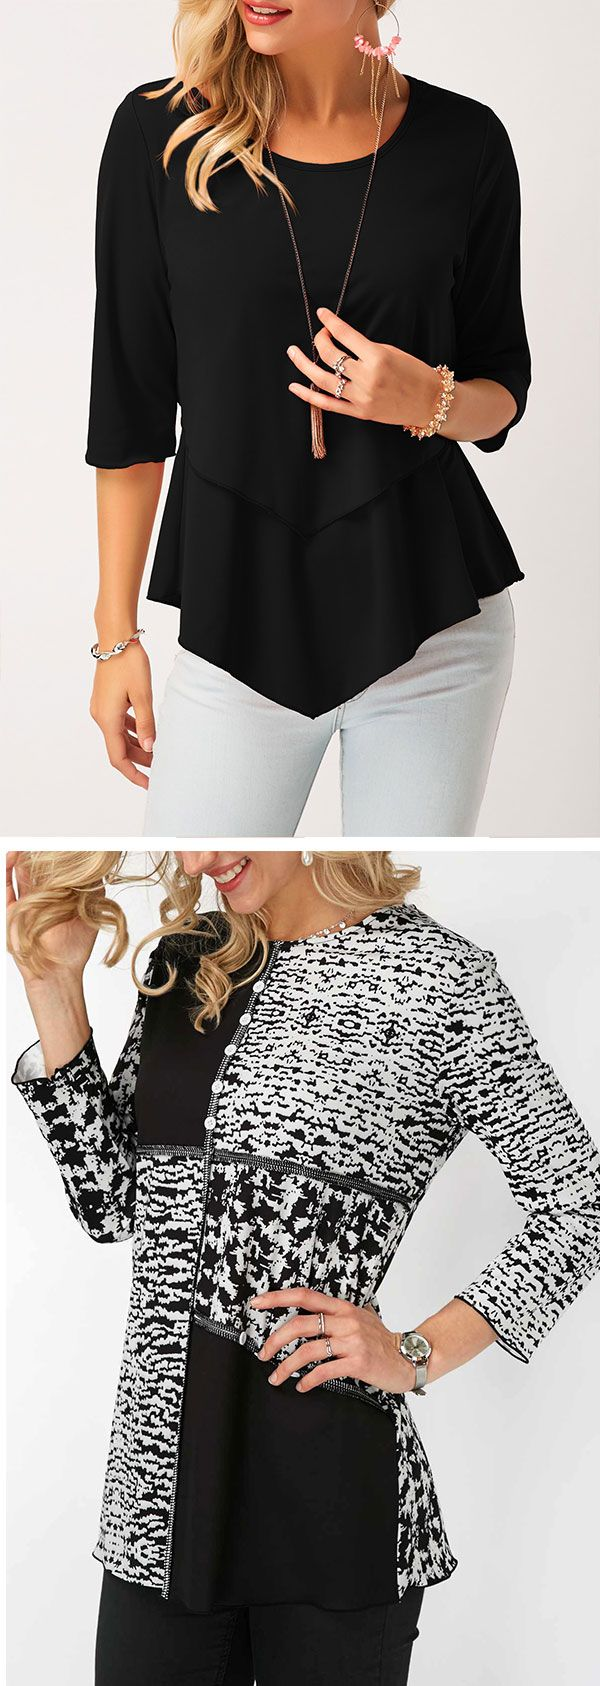 Cute tops, FREE SHIPPING...check them out.